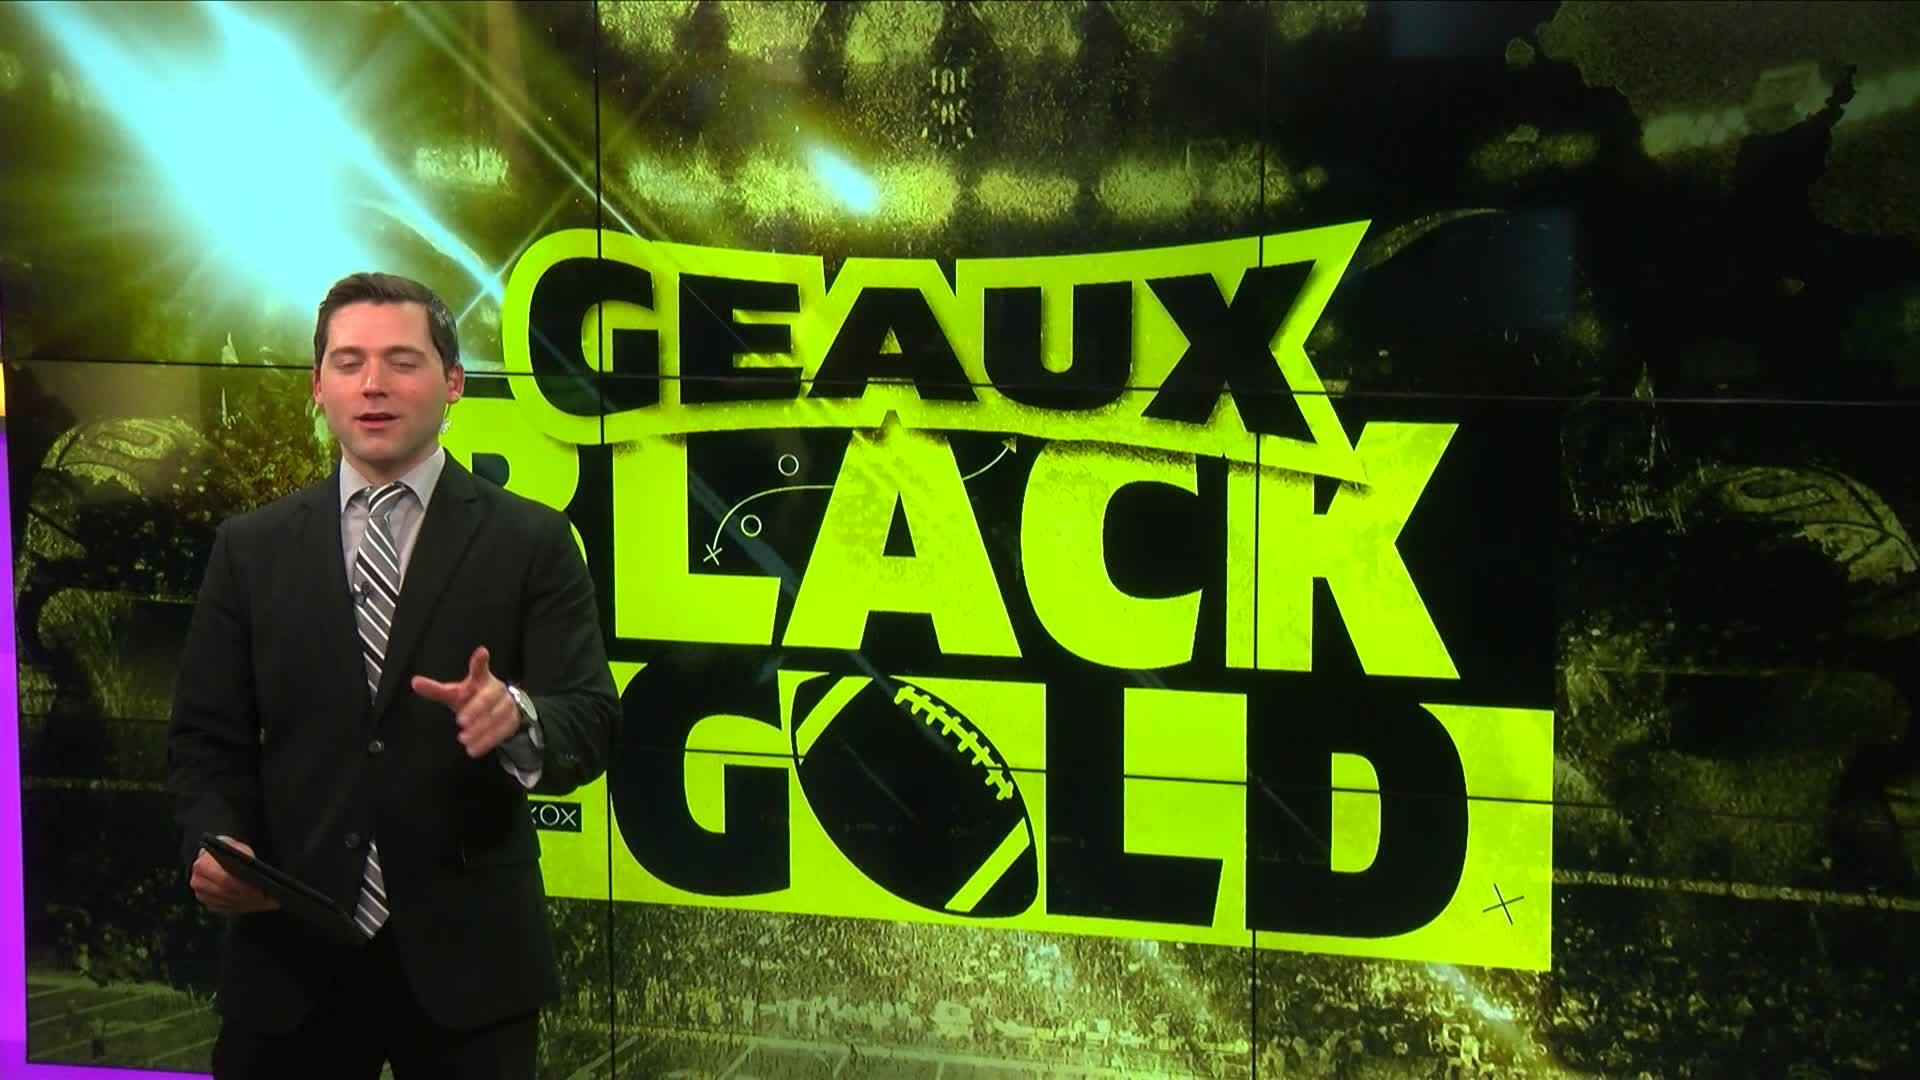 Geaux_Black_and_Gold_1216_3_20181217011743